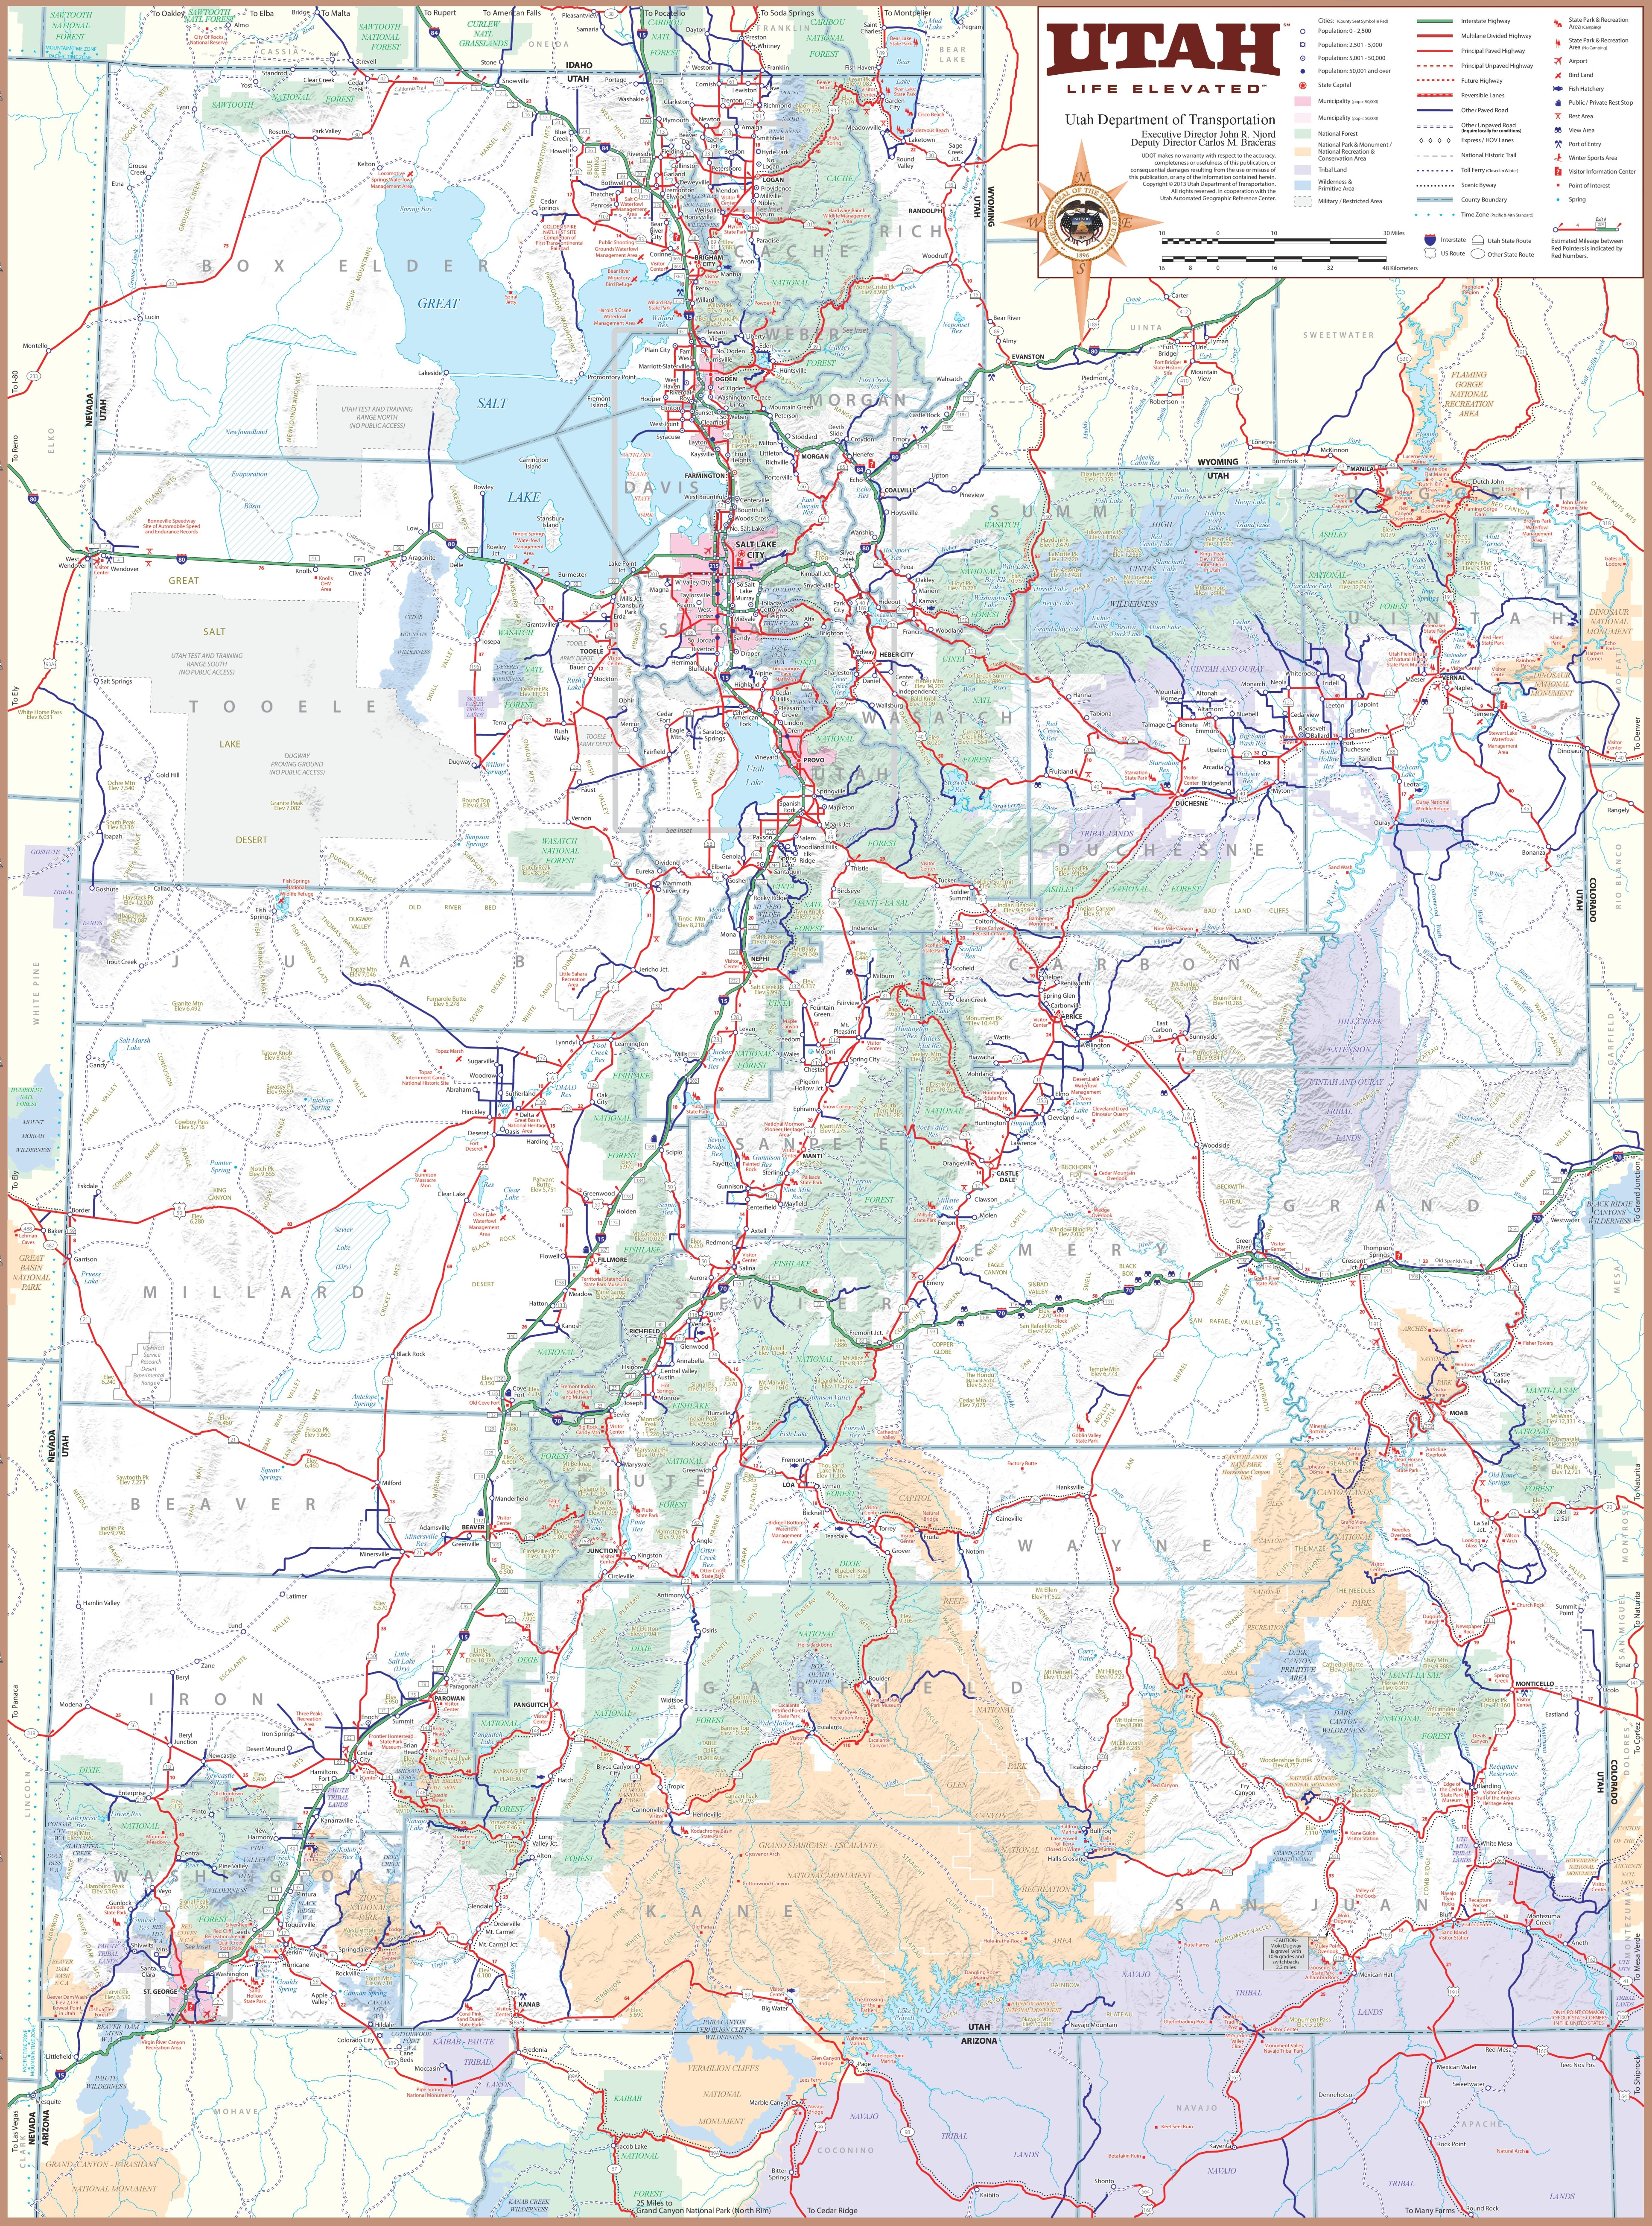 Utah Map With Cities Large detailed tourist map of Utah with cities and towns